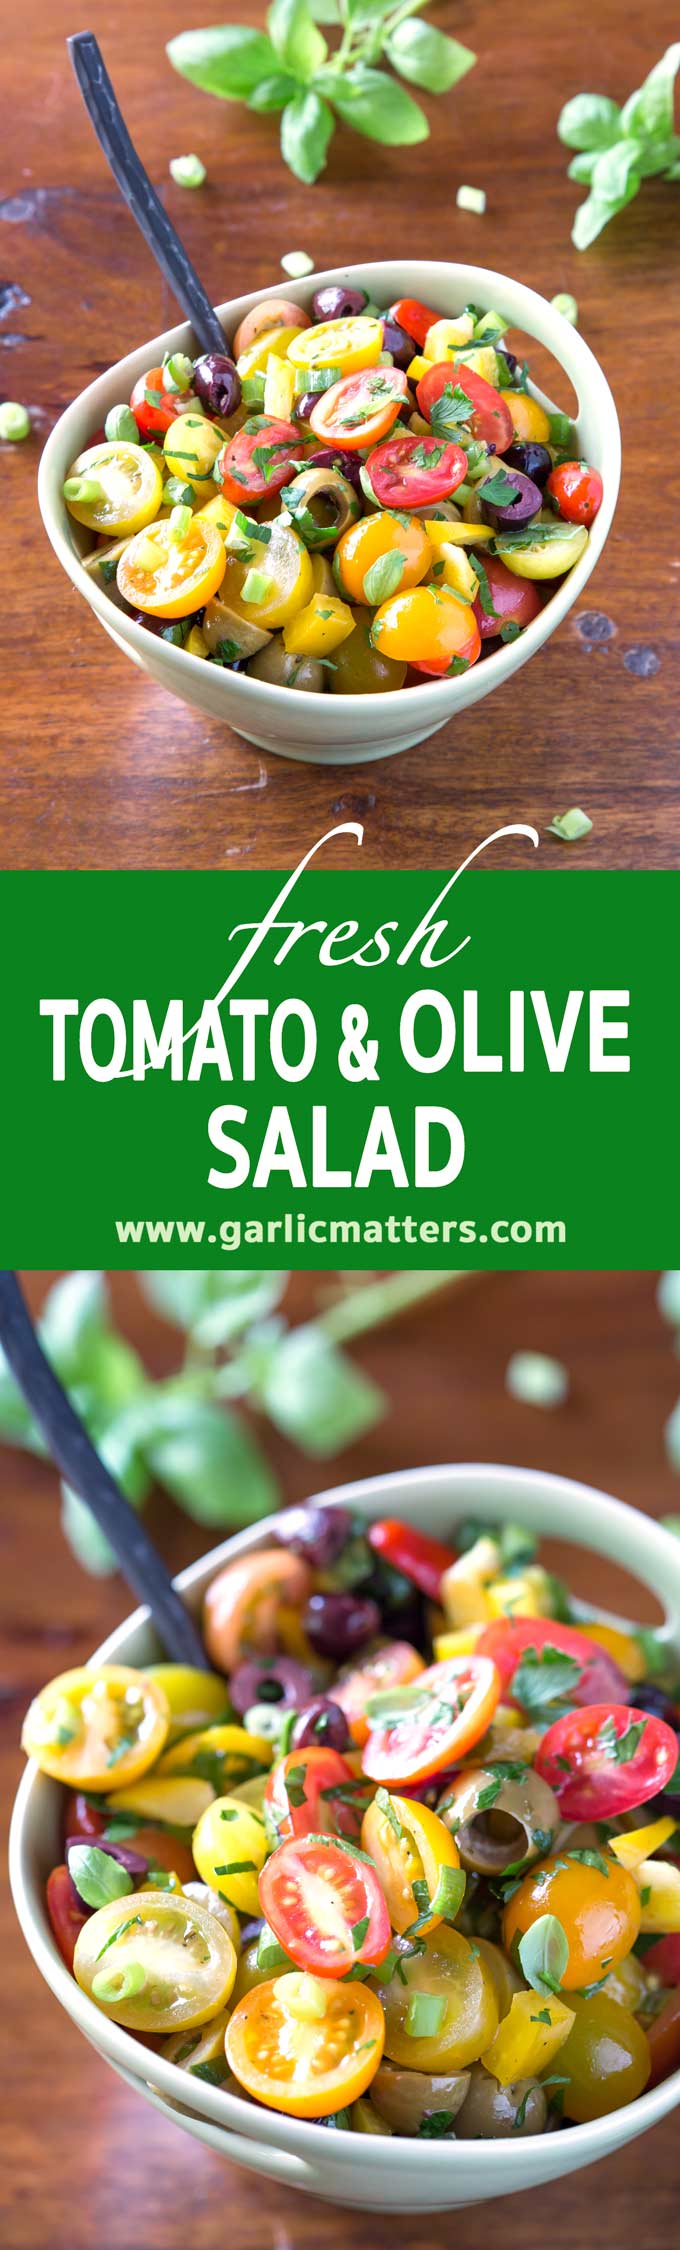 Tomato and Olive Salad recipe delivers bags of fresh tomato flavours. Easy, delicious, ready in minutes, vegan, gluten free diet friendly.